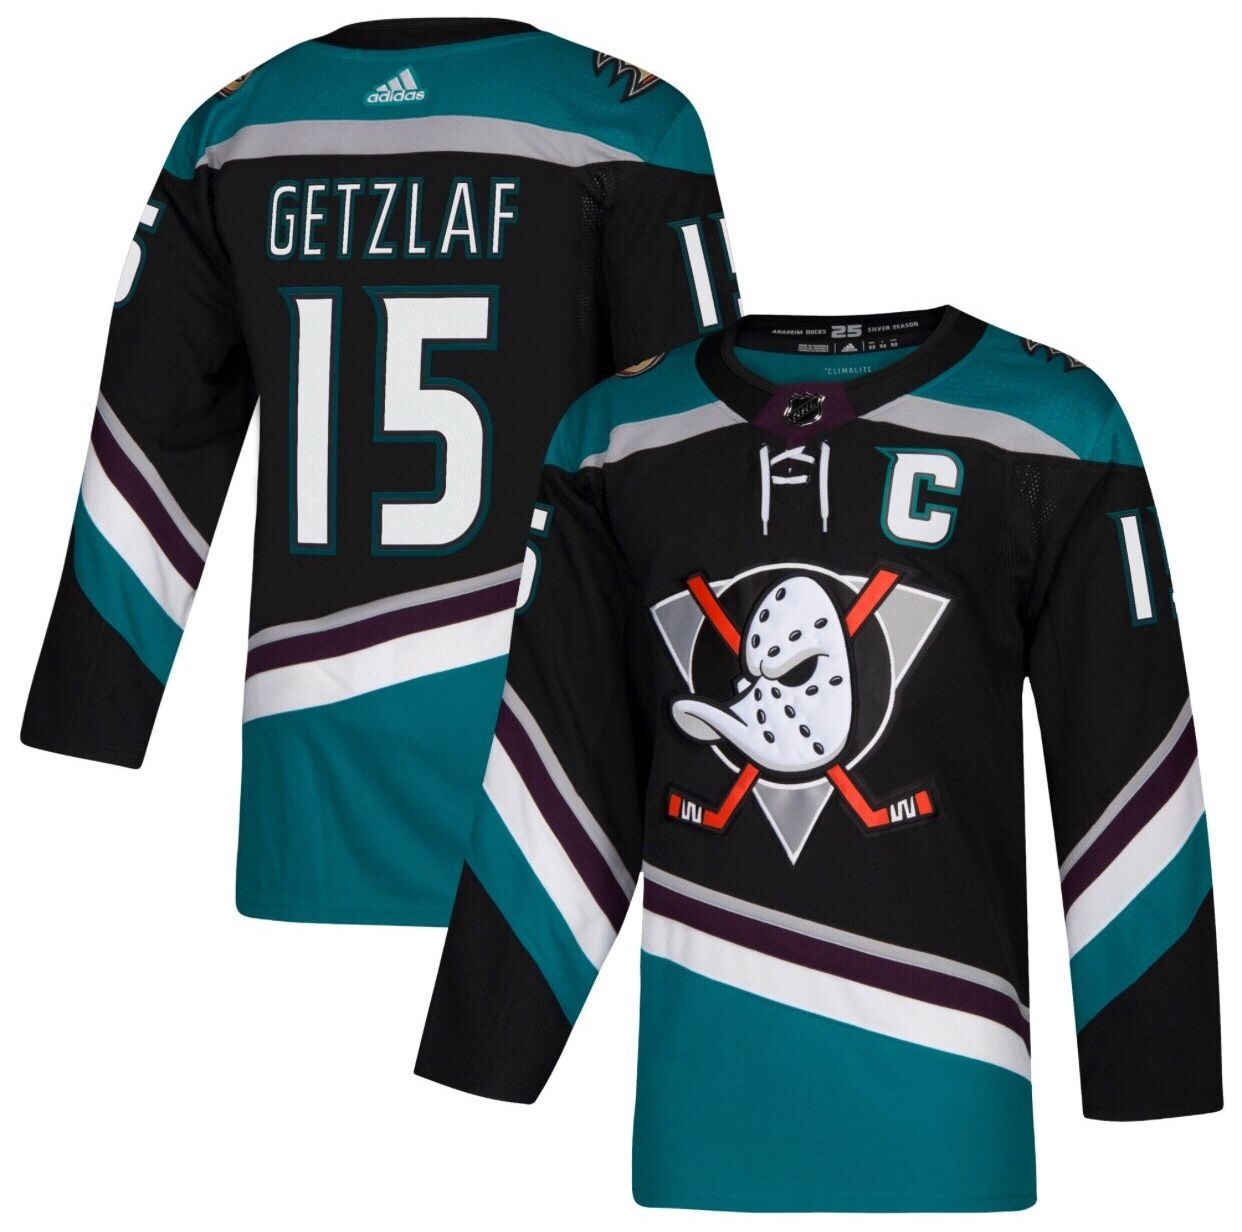 new style d0ea6 5294a Anaheim Ducks Retro Alternate NHL 2018/19 Jerseys | Products ...